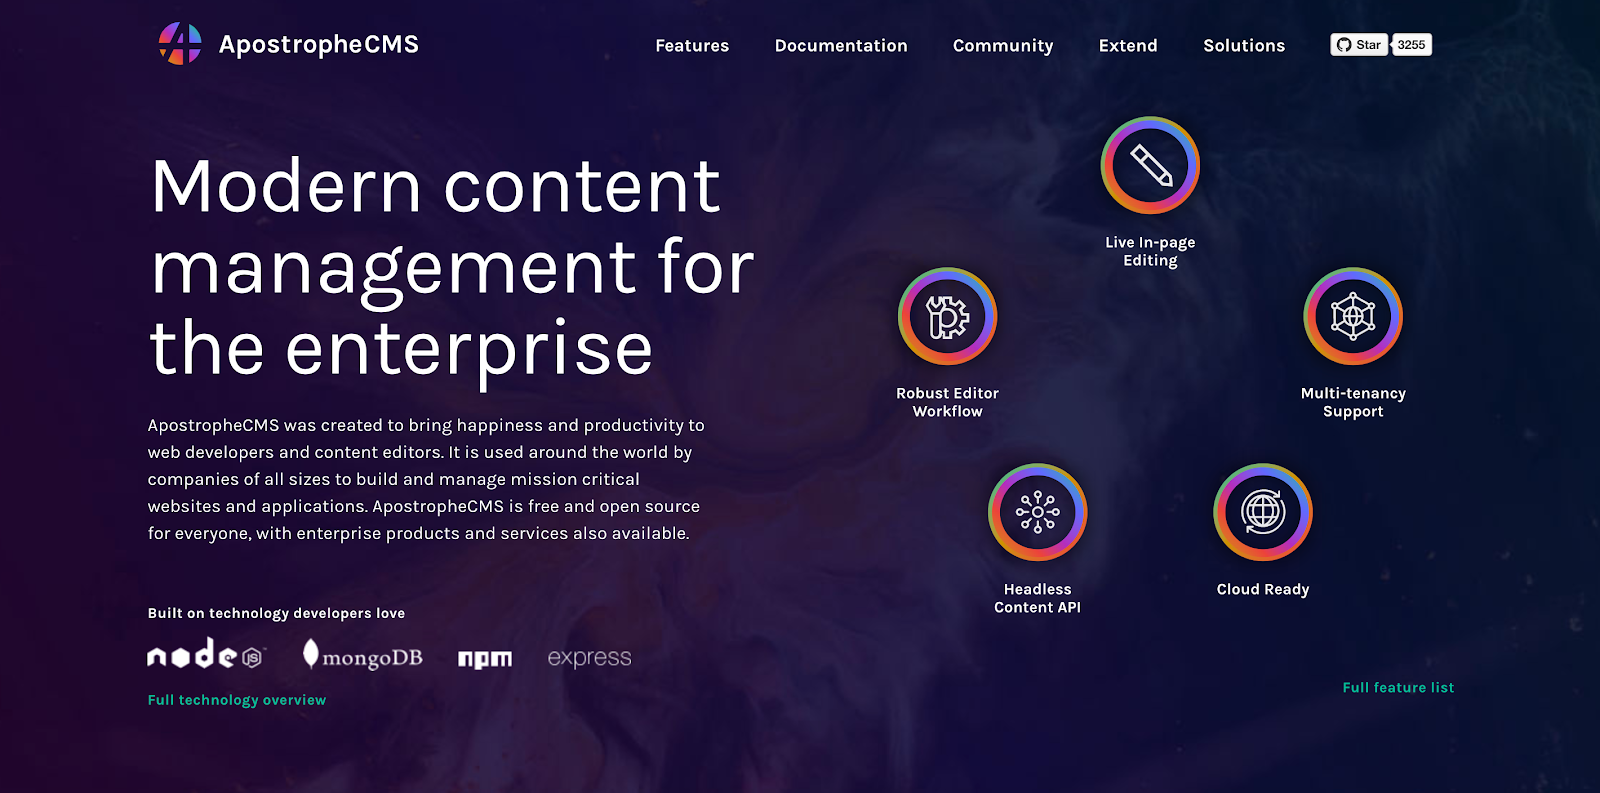 ApostropheCMS is a Javascript-based CMS with drag-and-drop editors that's free to download